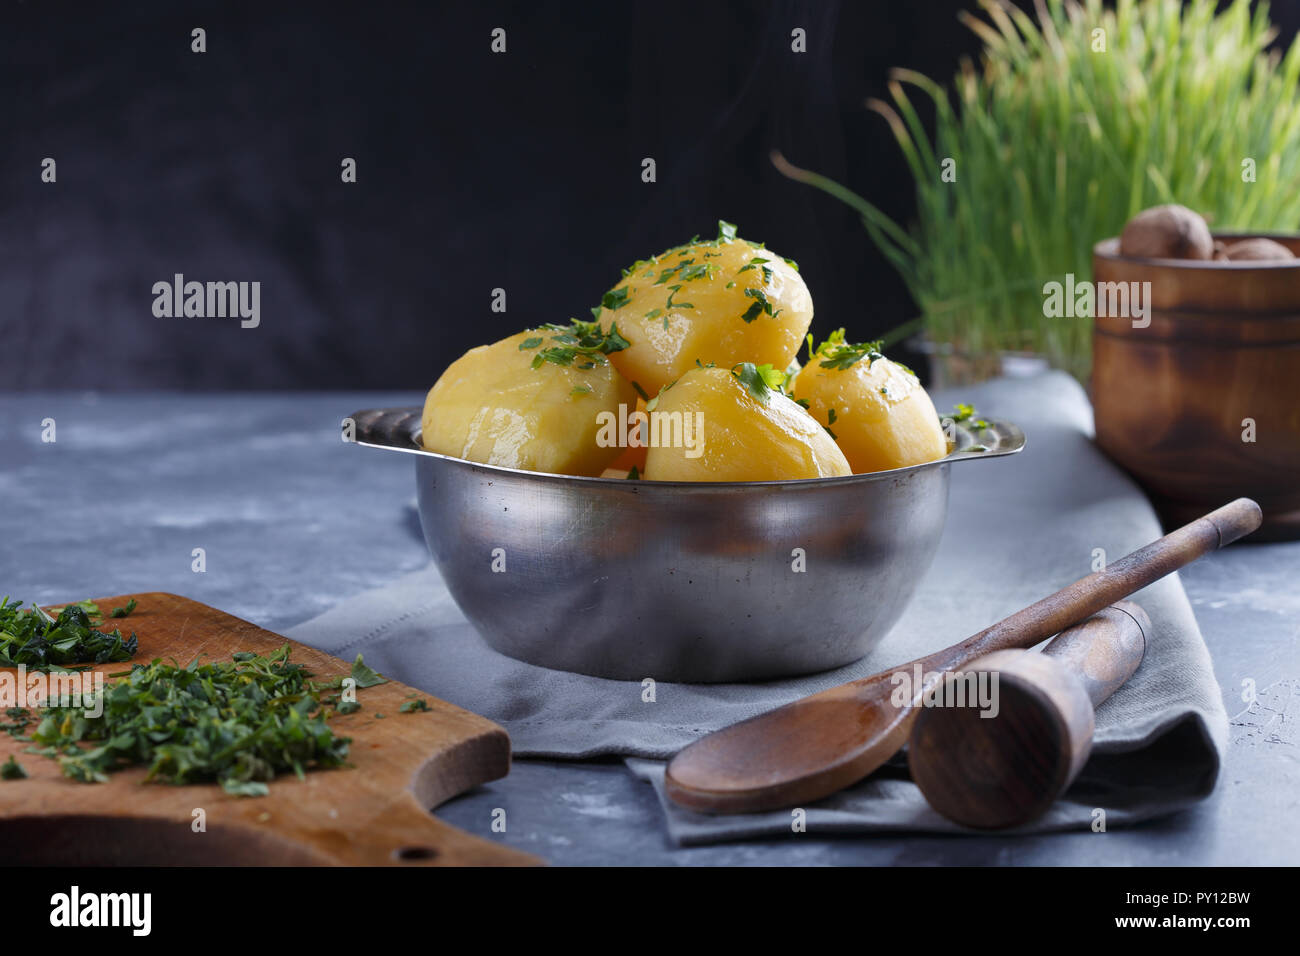 Hot boiled potatoes in a plate dusted with greens and smoke on a gray background. Stock Photo